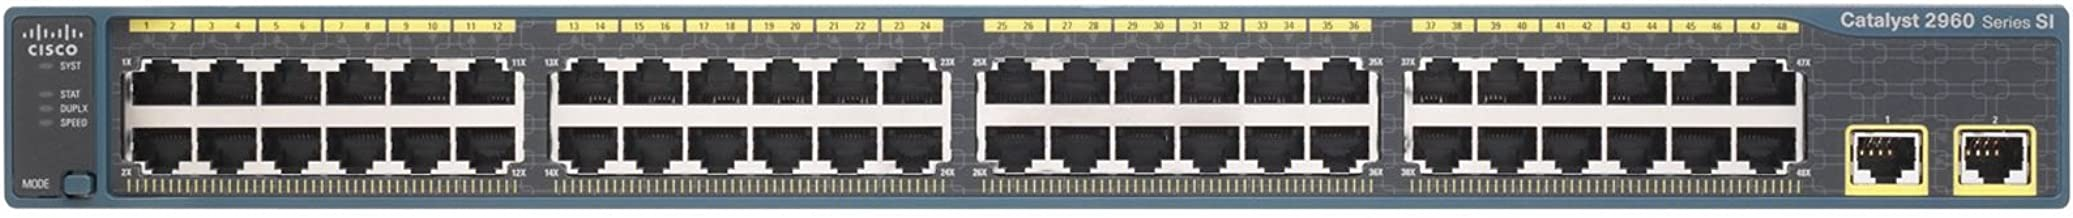 Cisco WS-C2960S-48TS-L Catalyst 2960 Series Switch